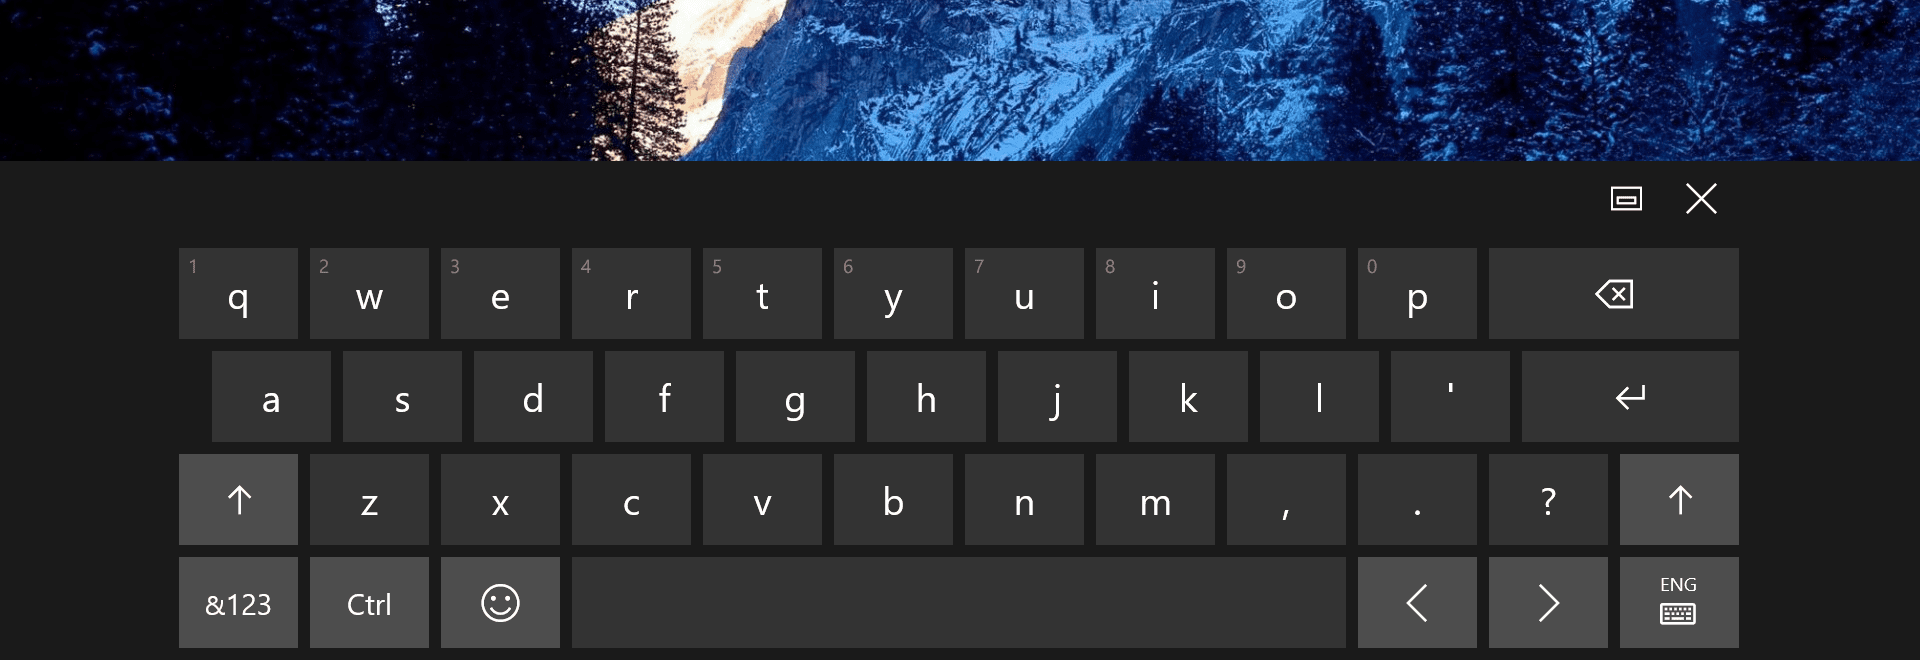 How to disable the on screen touch keyboard in windows 10 for Window keyboard